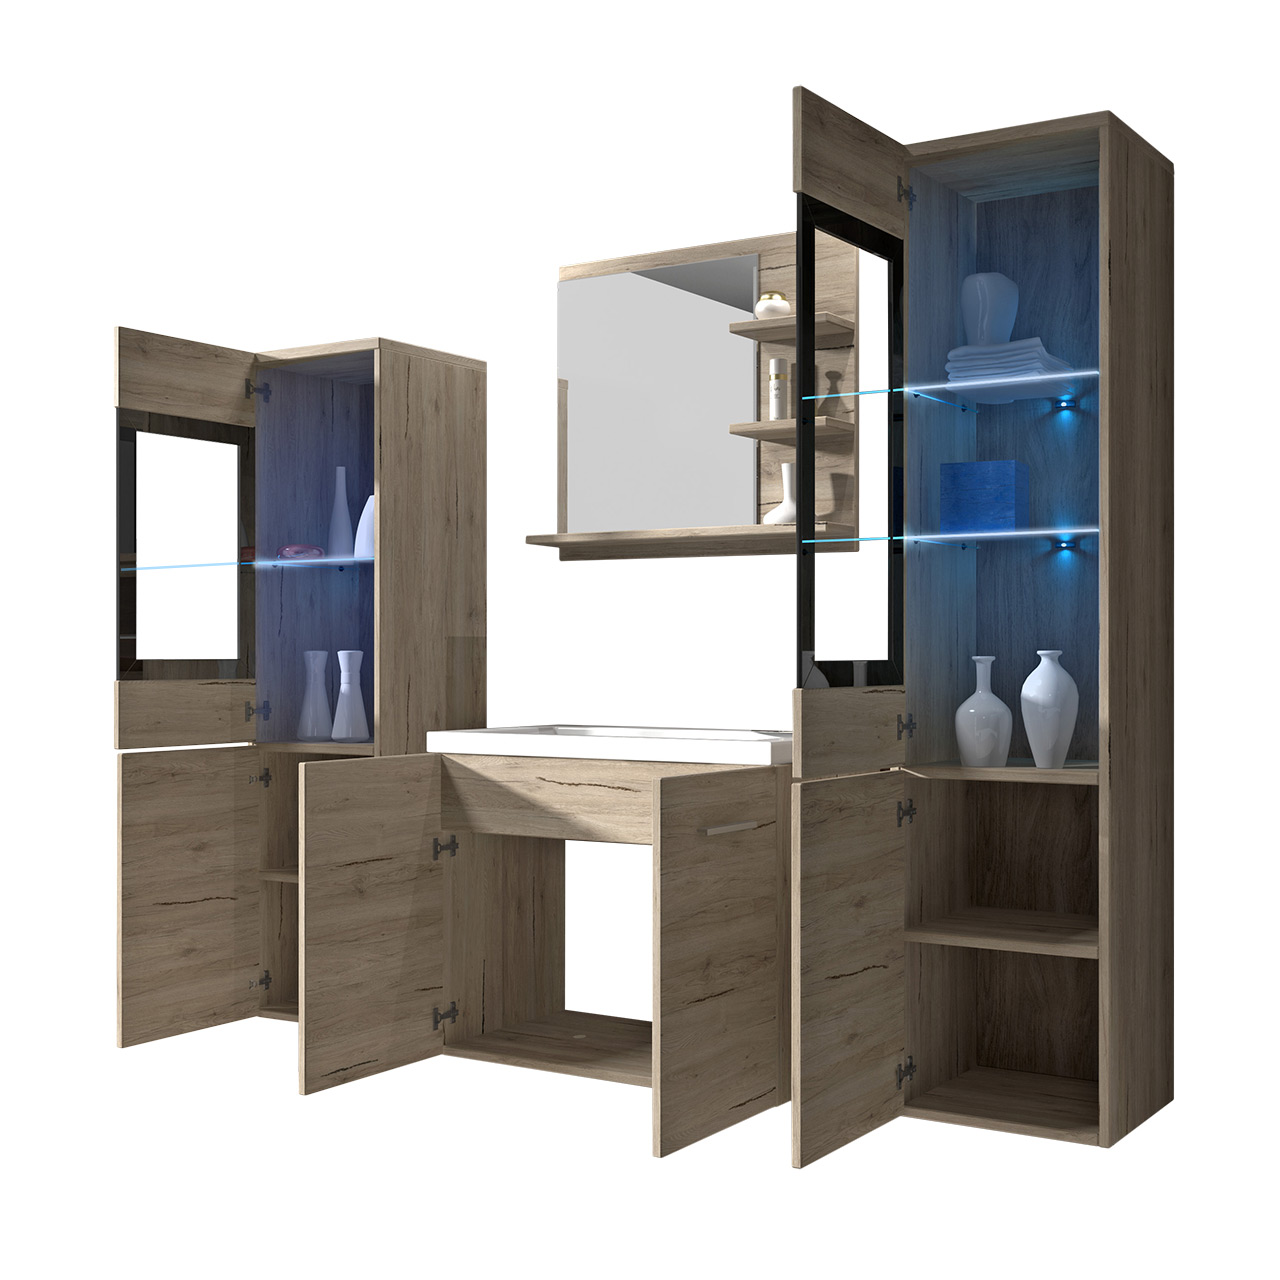 modern badm bel set badmoebel badezimmer udine baros. Black Bedroom Furniture Sets. Home Design Ideas